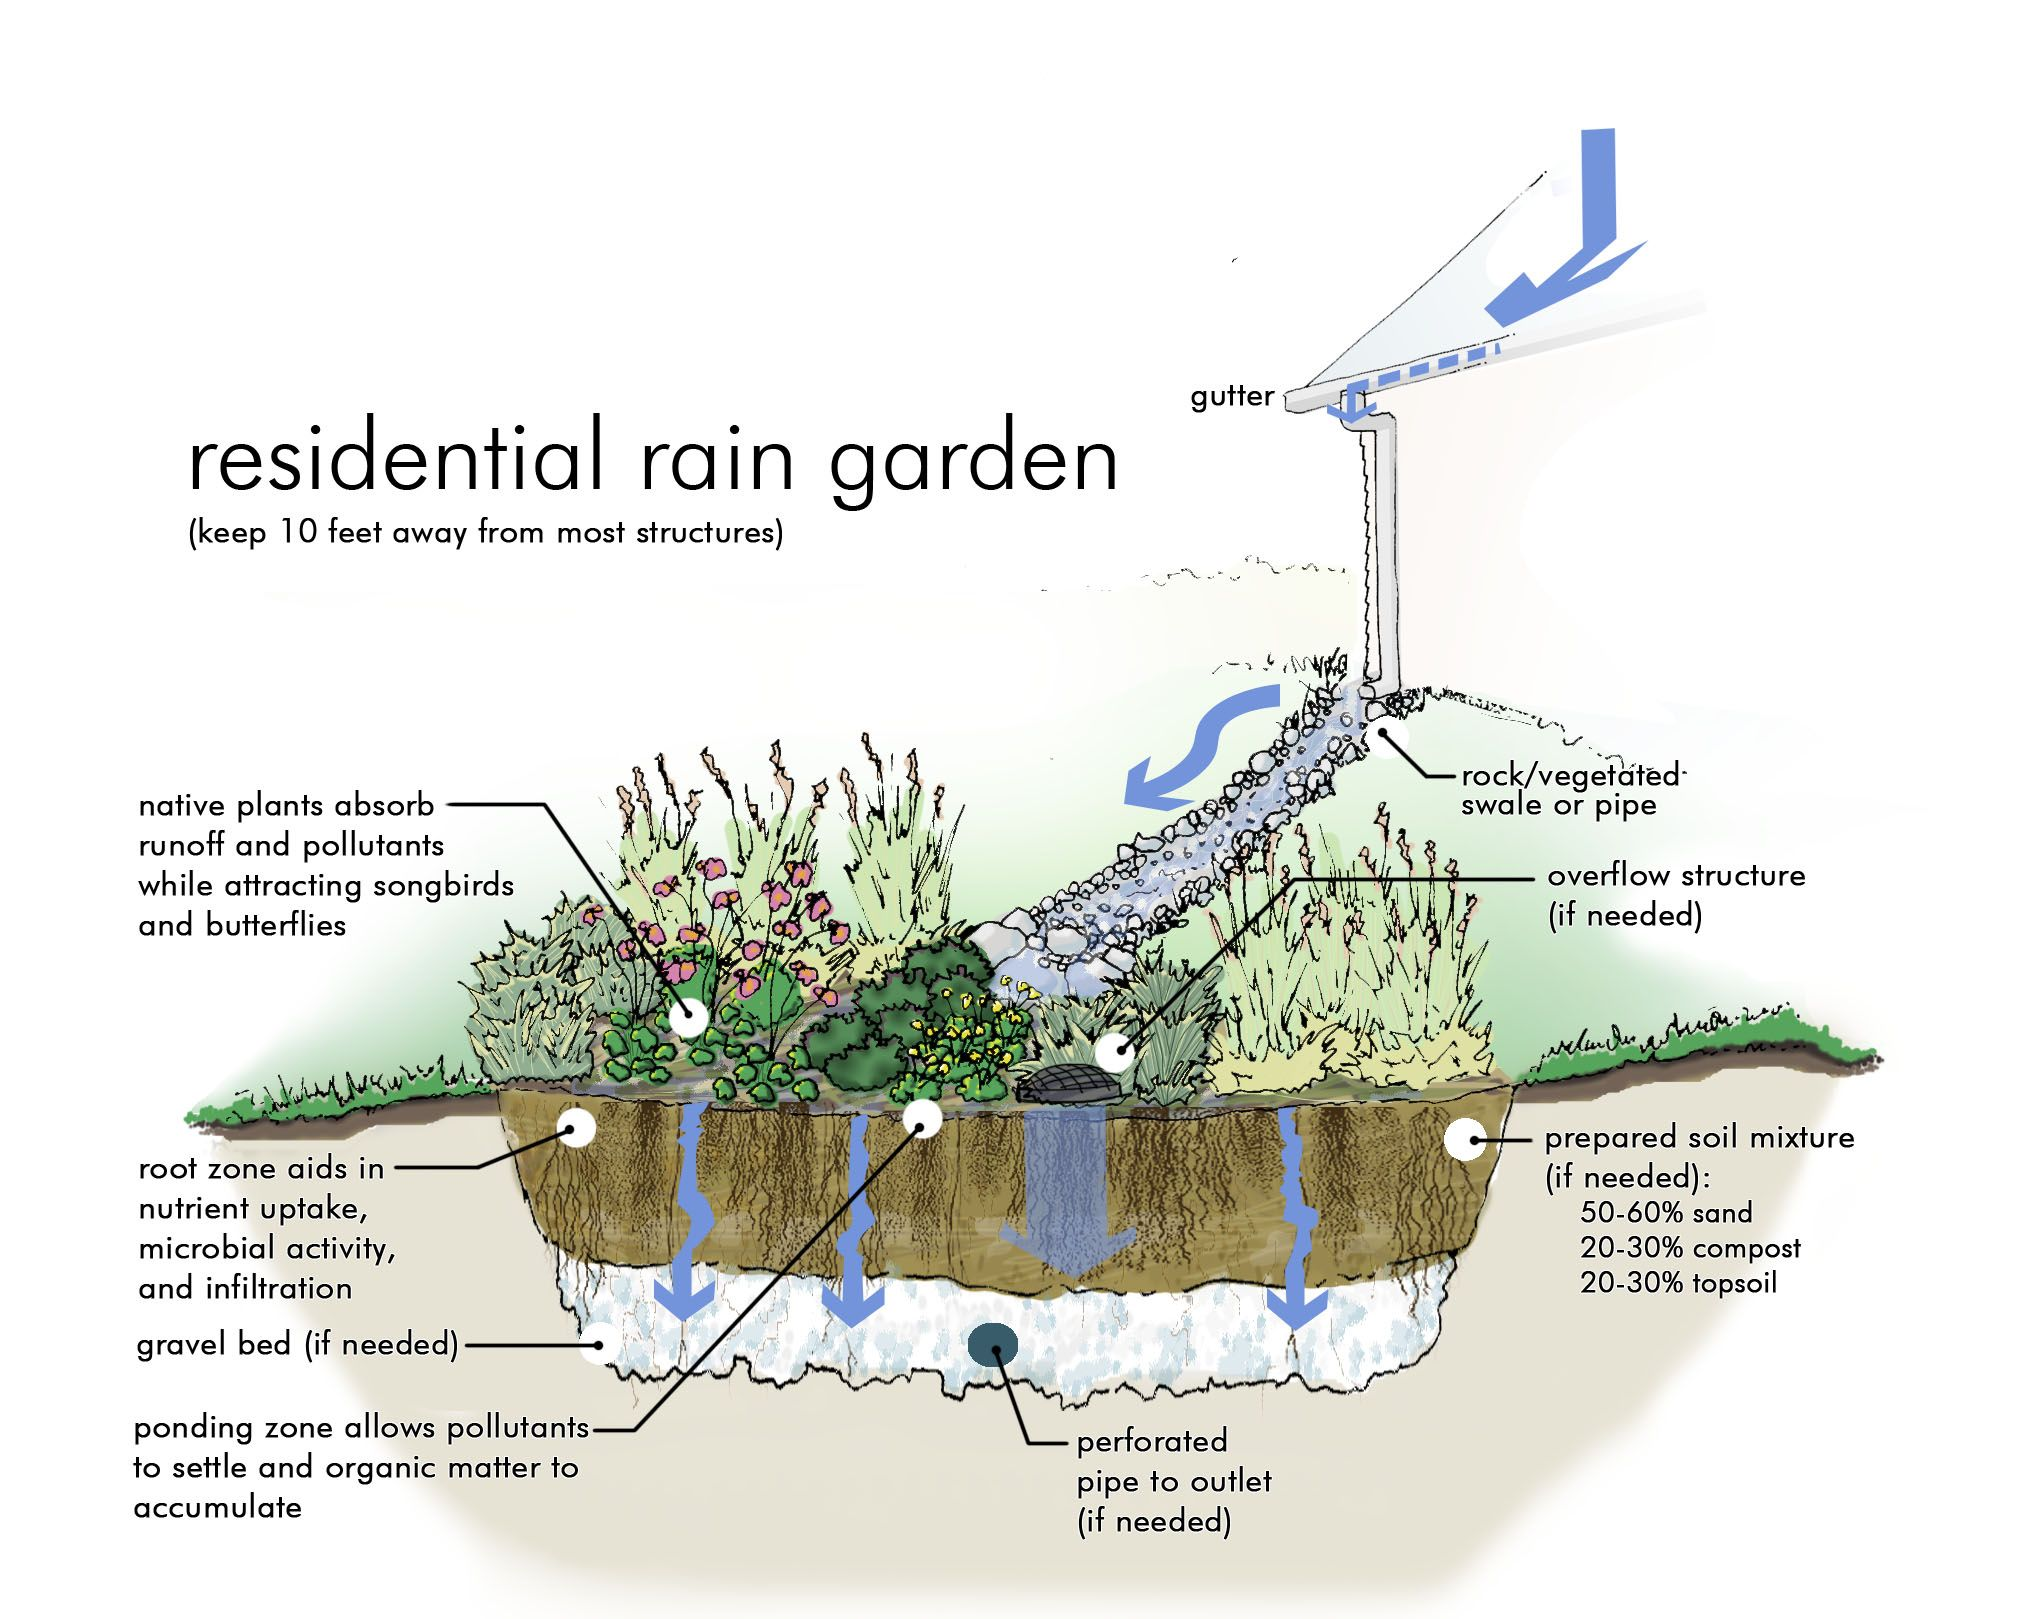 Rain Garden Design rain garden design Photos Of Rain Gardens Rain Garden Graphic Simulation From University Of Nebraska Extension